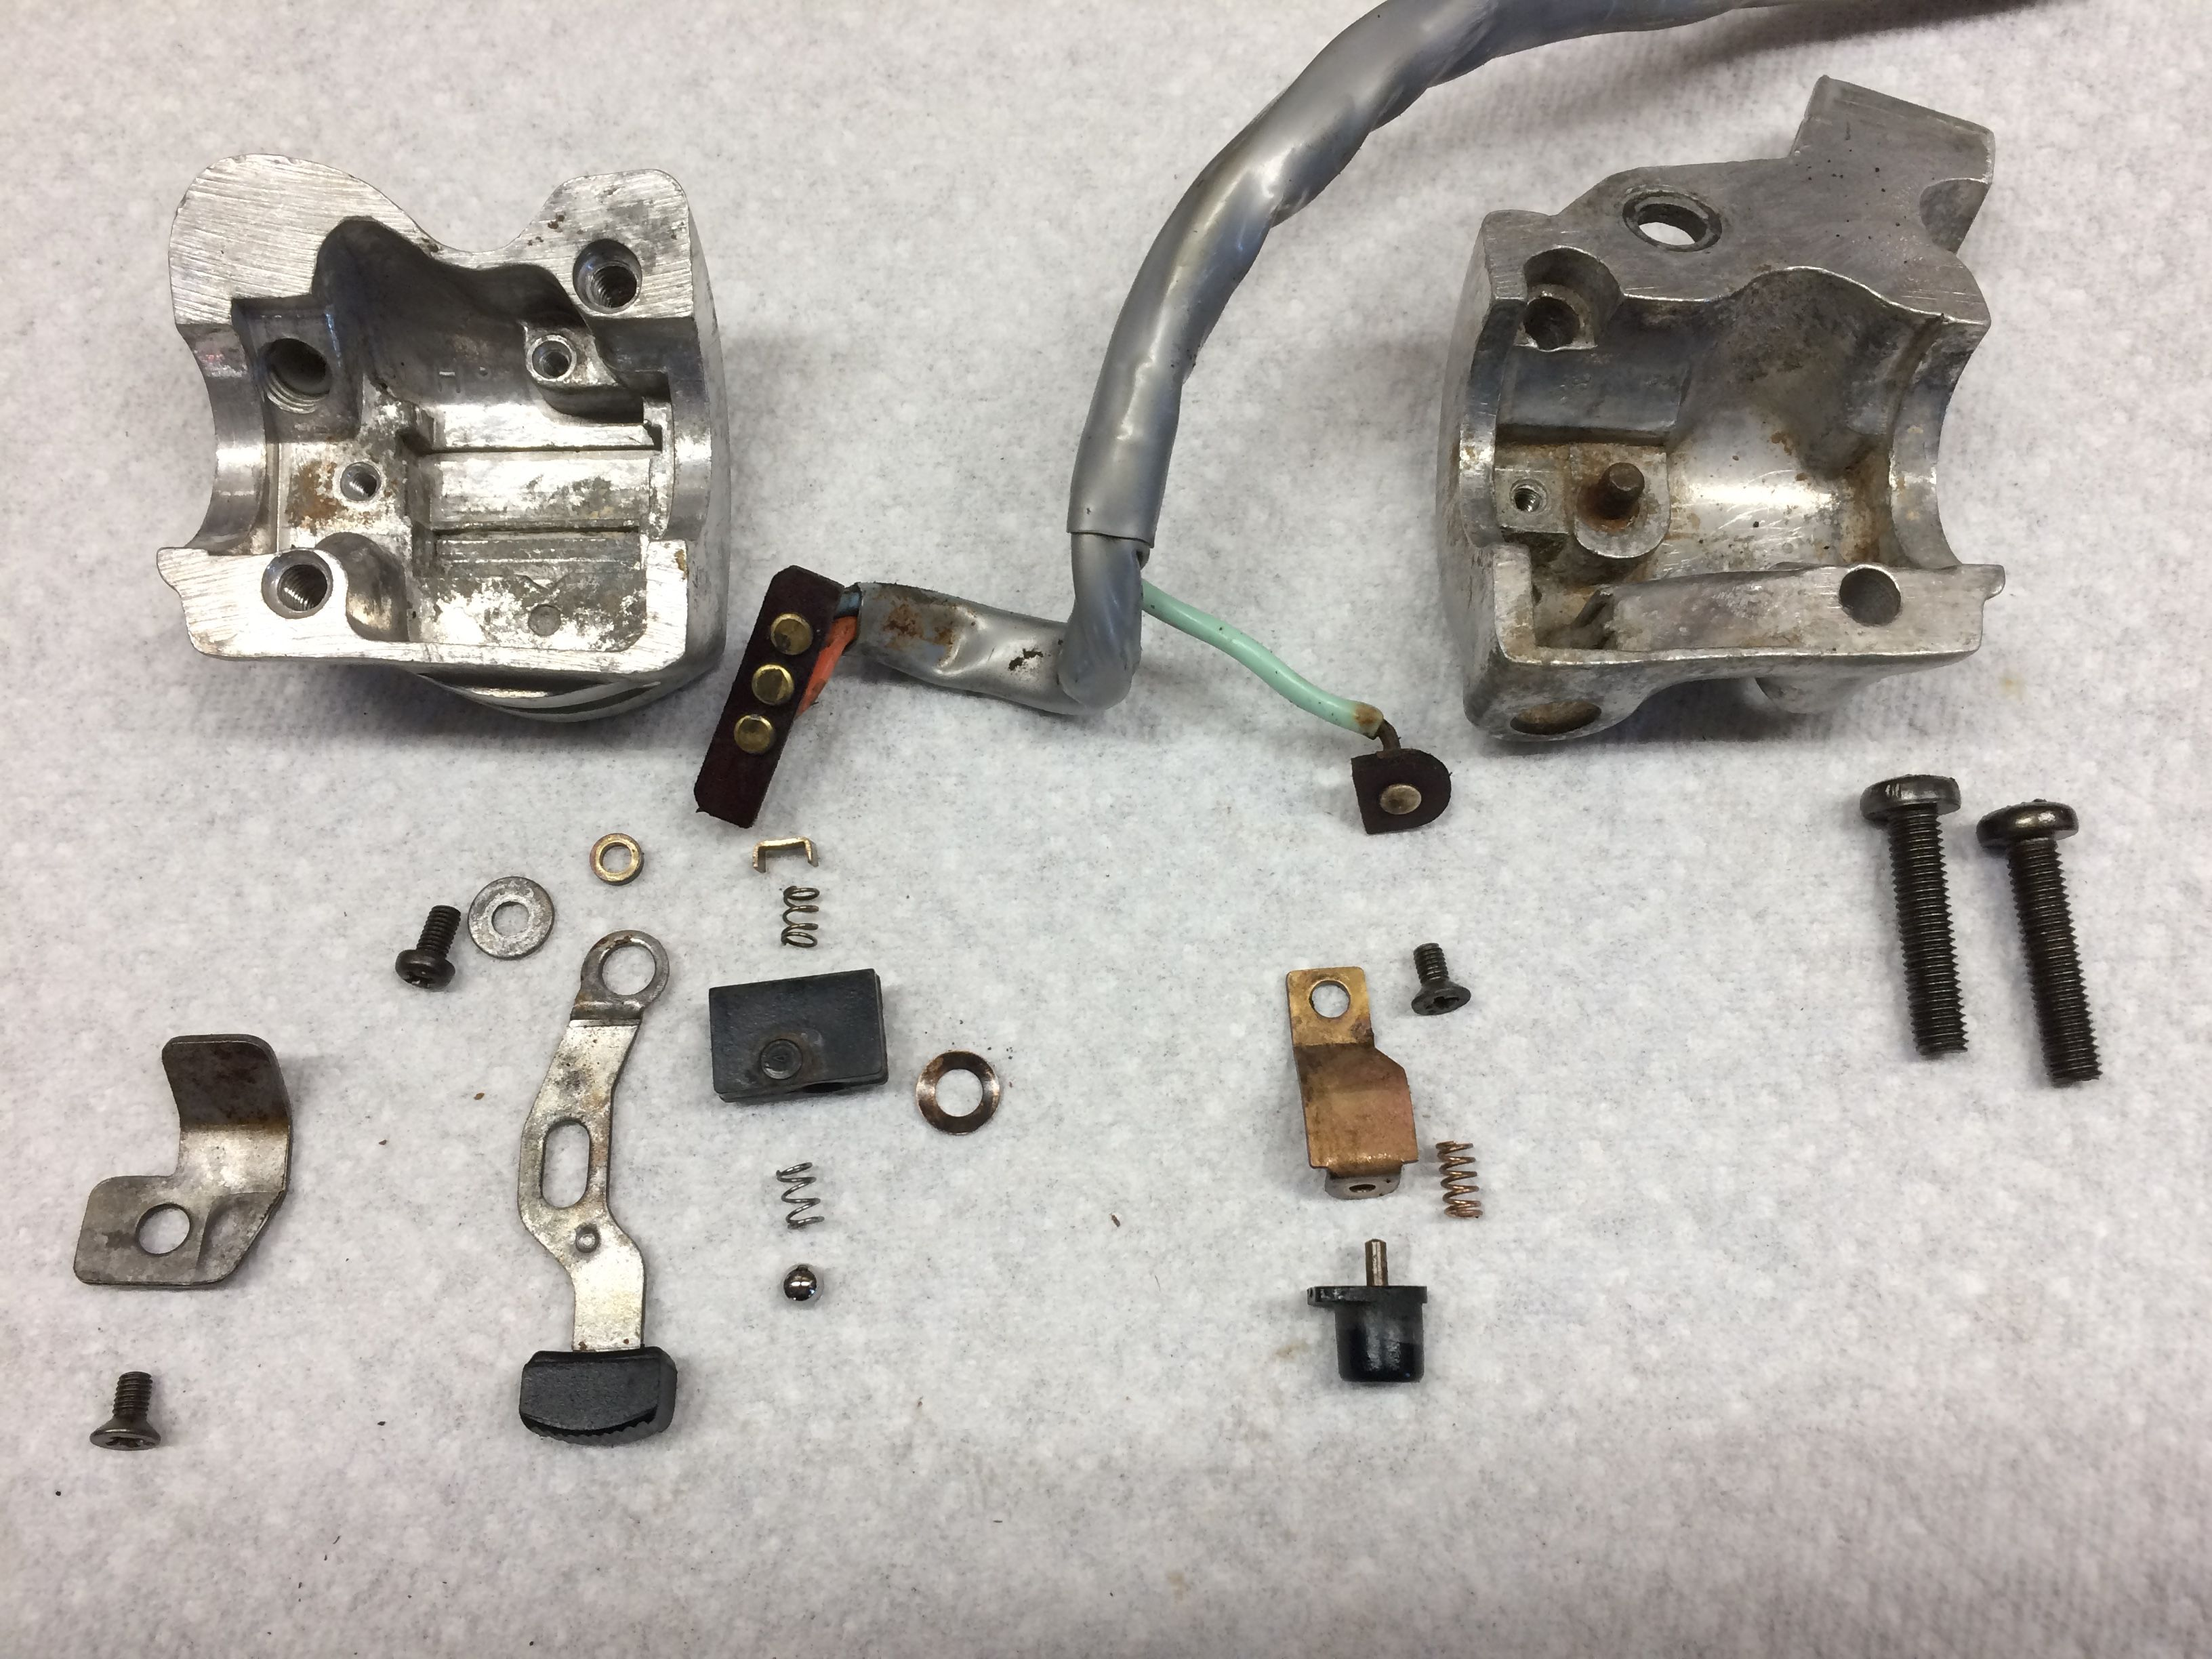 hight resolution of reassembling a honda ct90 horn and turn signal switch assembly may look difficult but it really isn t all that bad and i have provided detailed